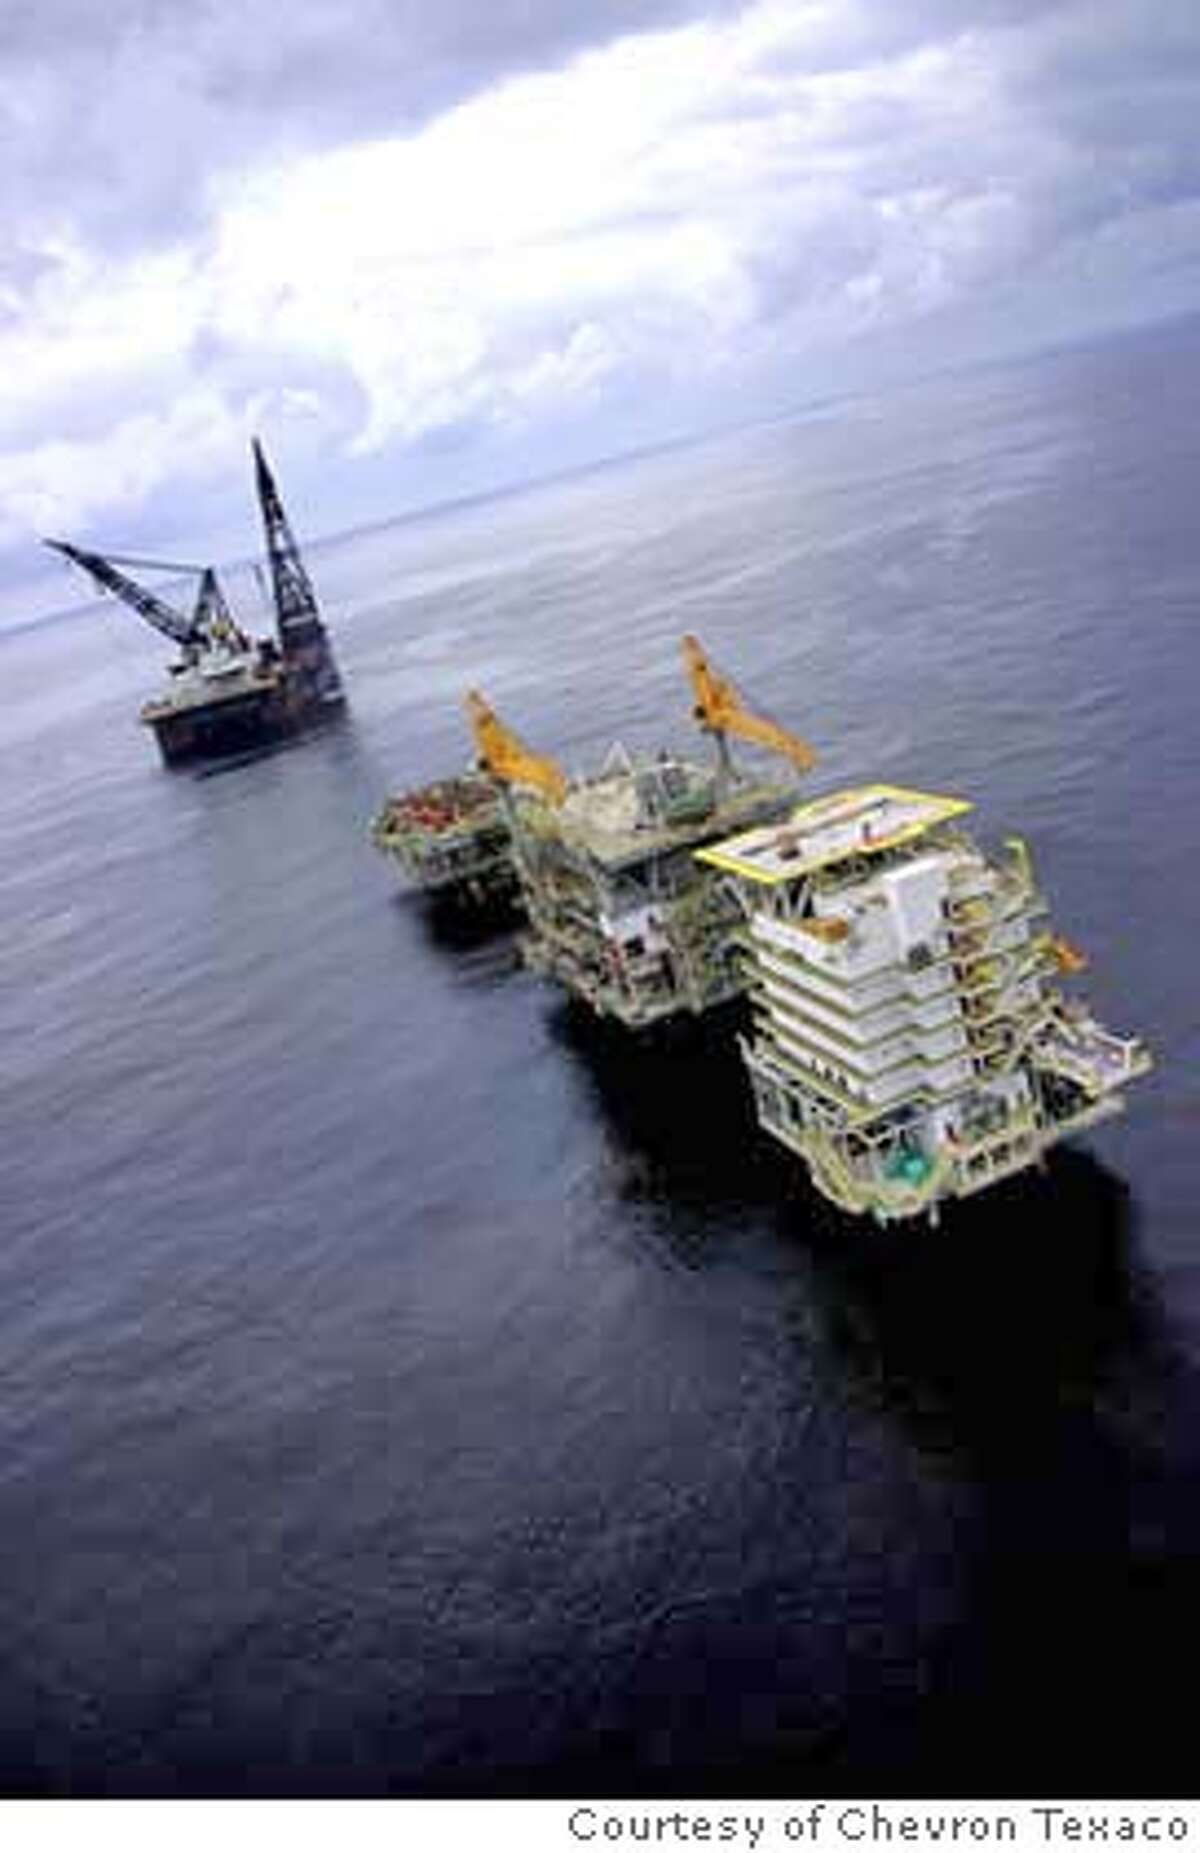 Photo of the Sanha Condensate Complex offshore Angola. Offshore Angola, The Sanha Condensate Complex consists of three bridge-connected platforms, one for drilling and production, one for processing and compression, and one for living quarters. In the distance is the semi-submersible Thialf, which lifted the Sanha topsides into place.